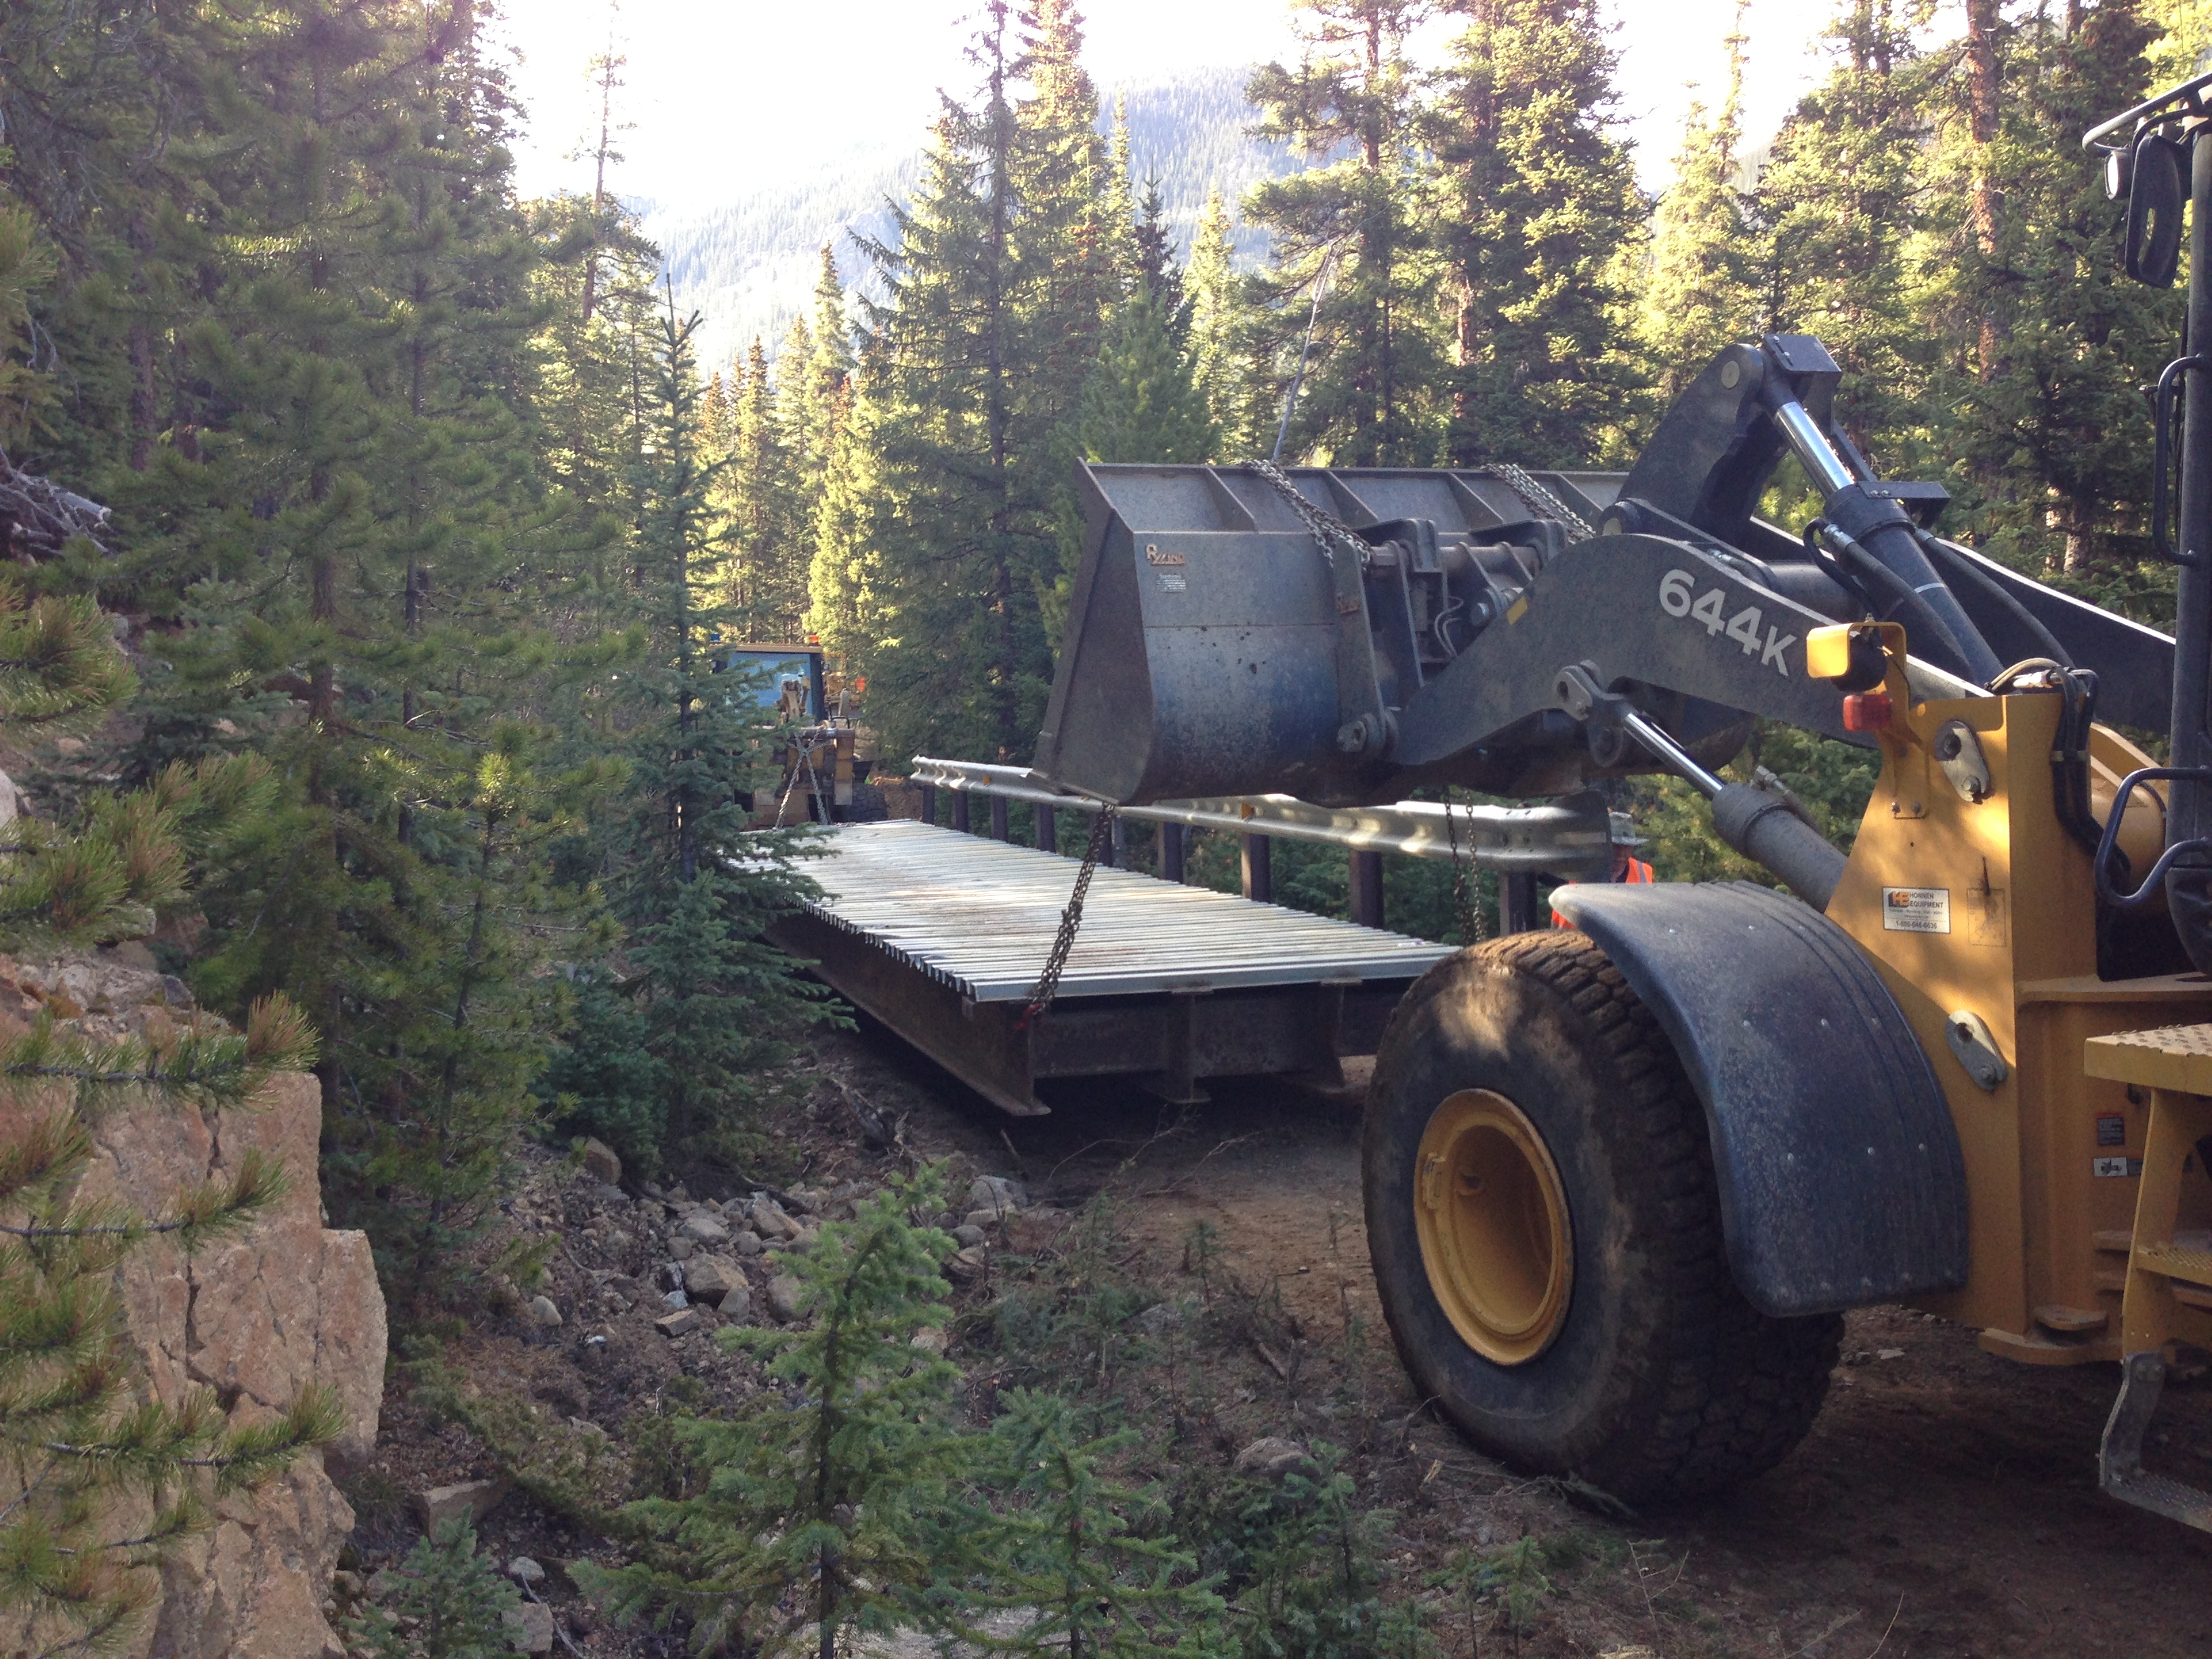 A machine transports a bridge through the forest